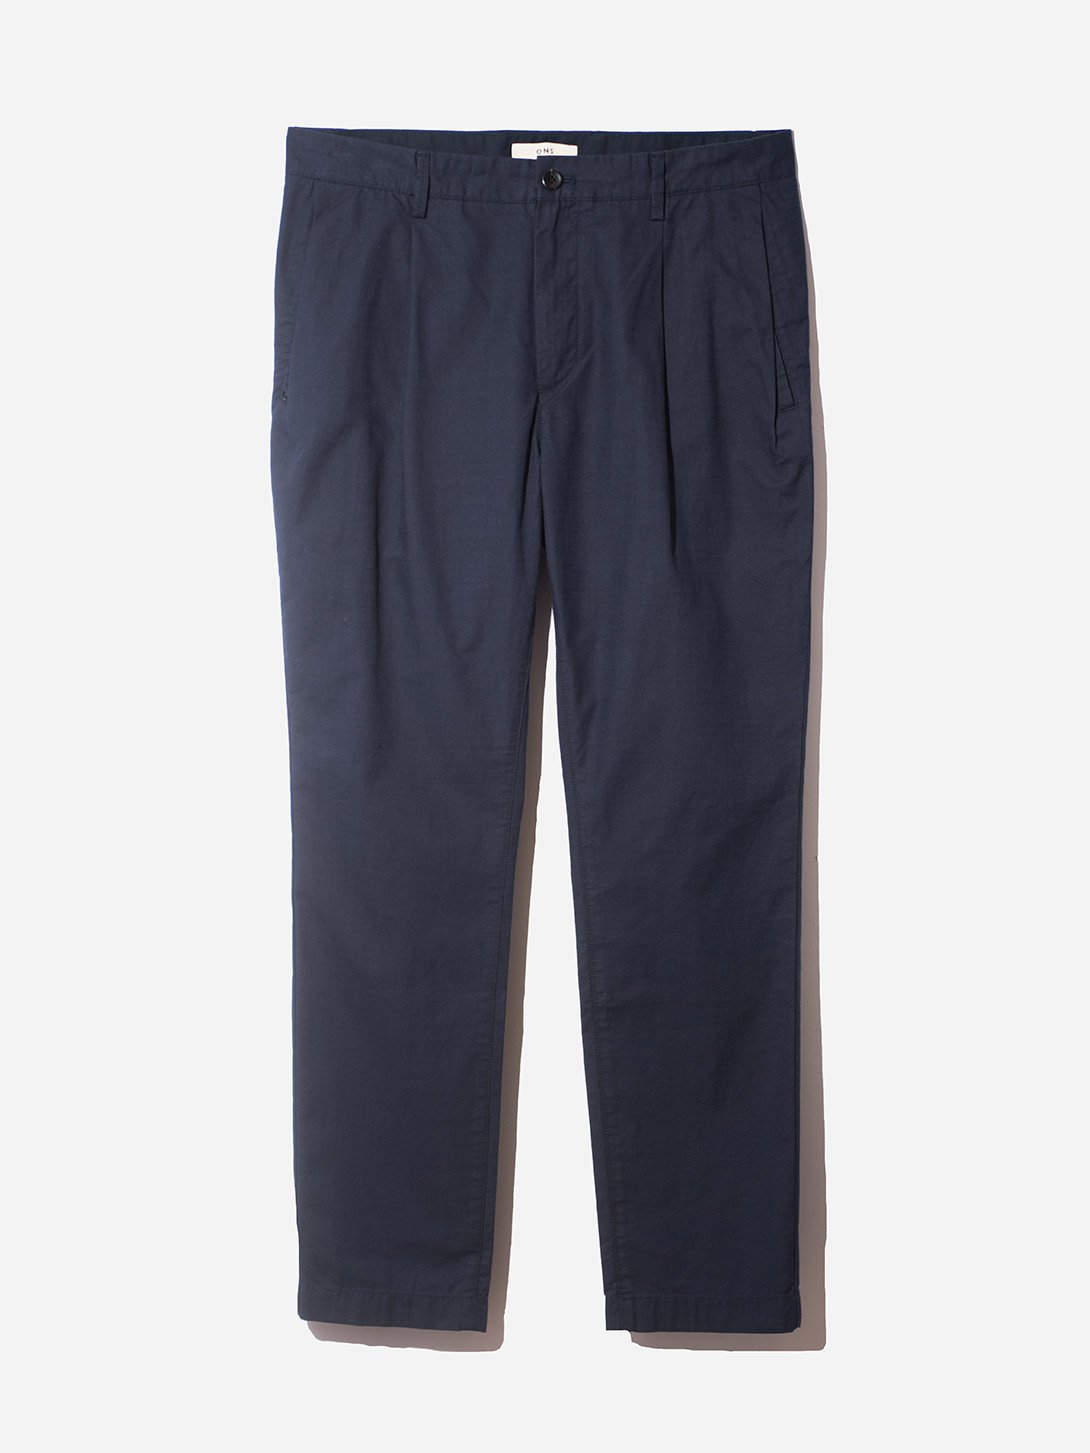 NAVY pants for men modern chino ons clothing